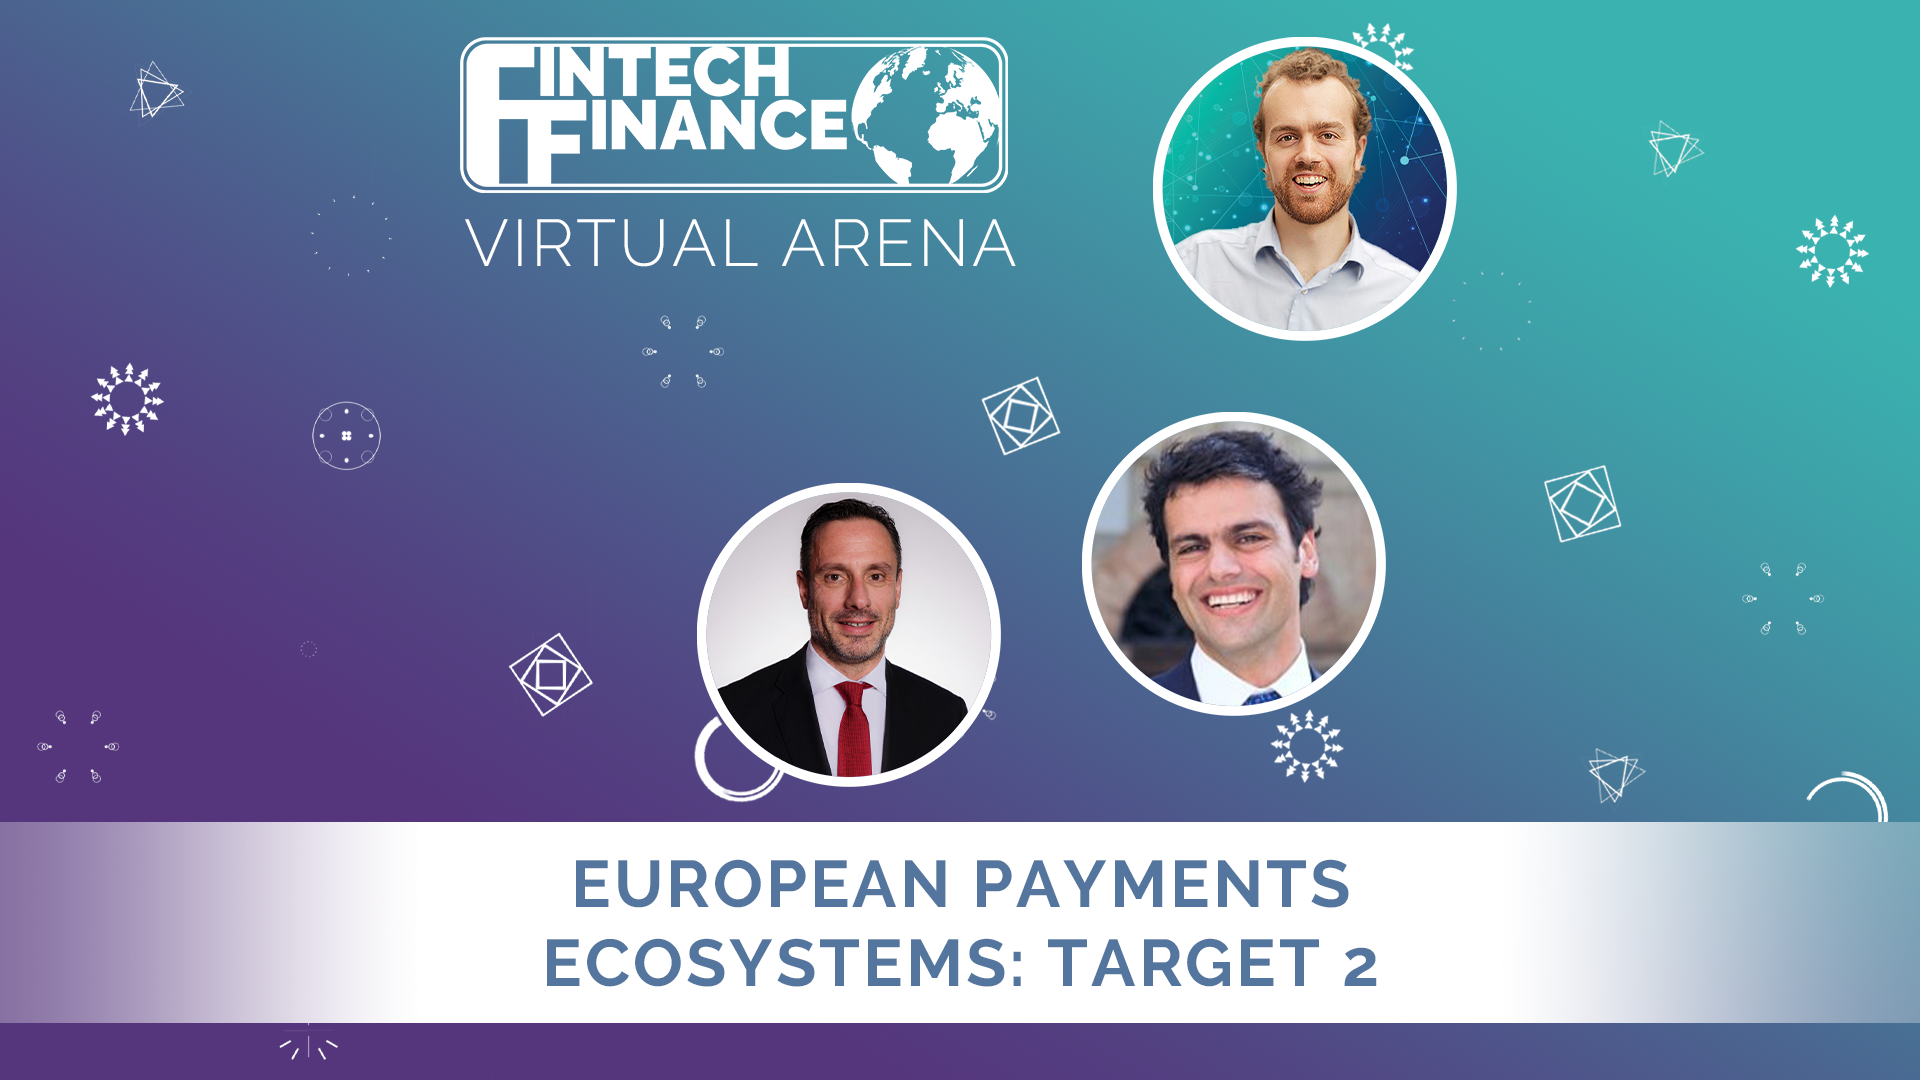 The European Payments Ecosystem